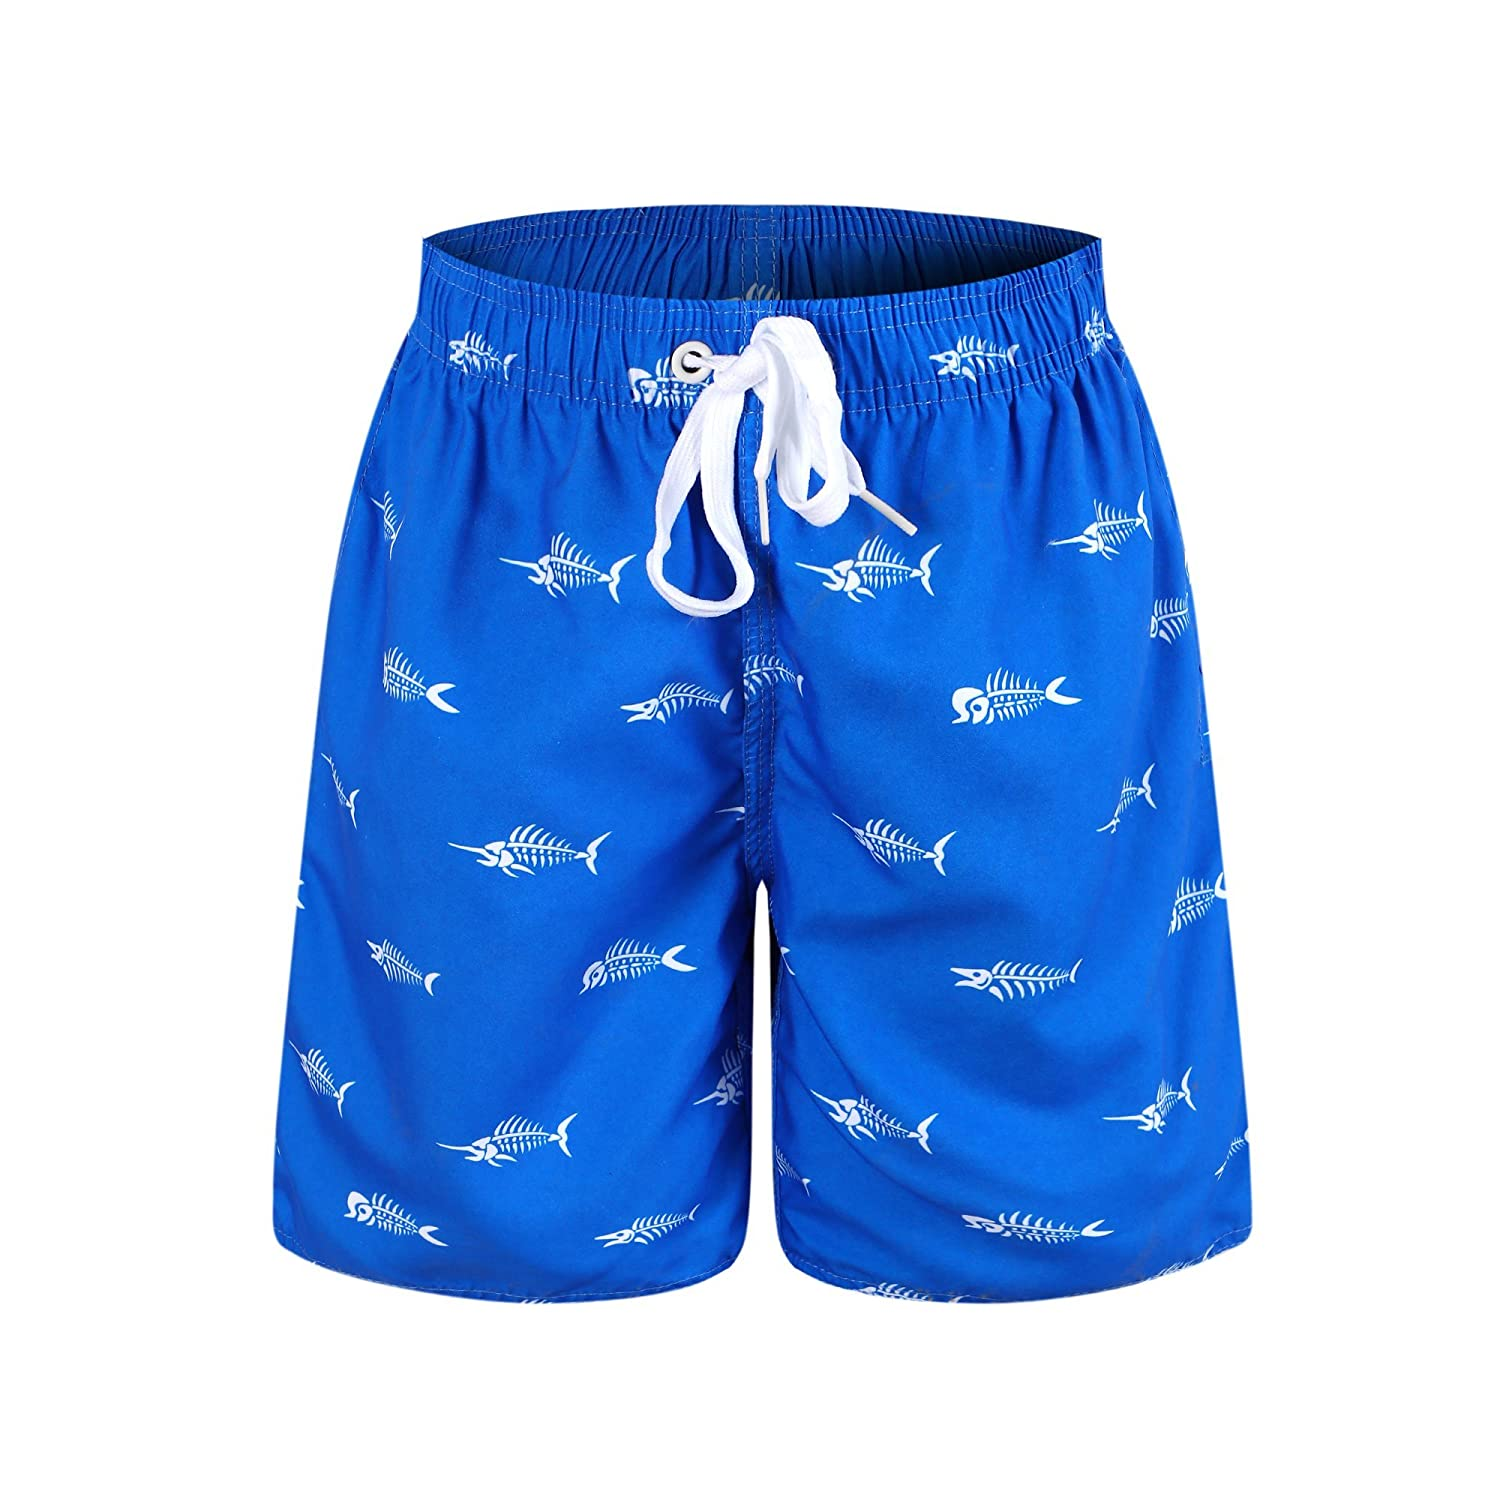 MILANKERR Big Boys' Swim Trunks Size 6-20